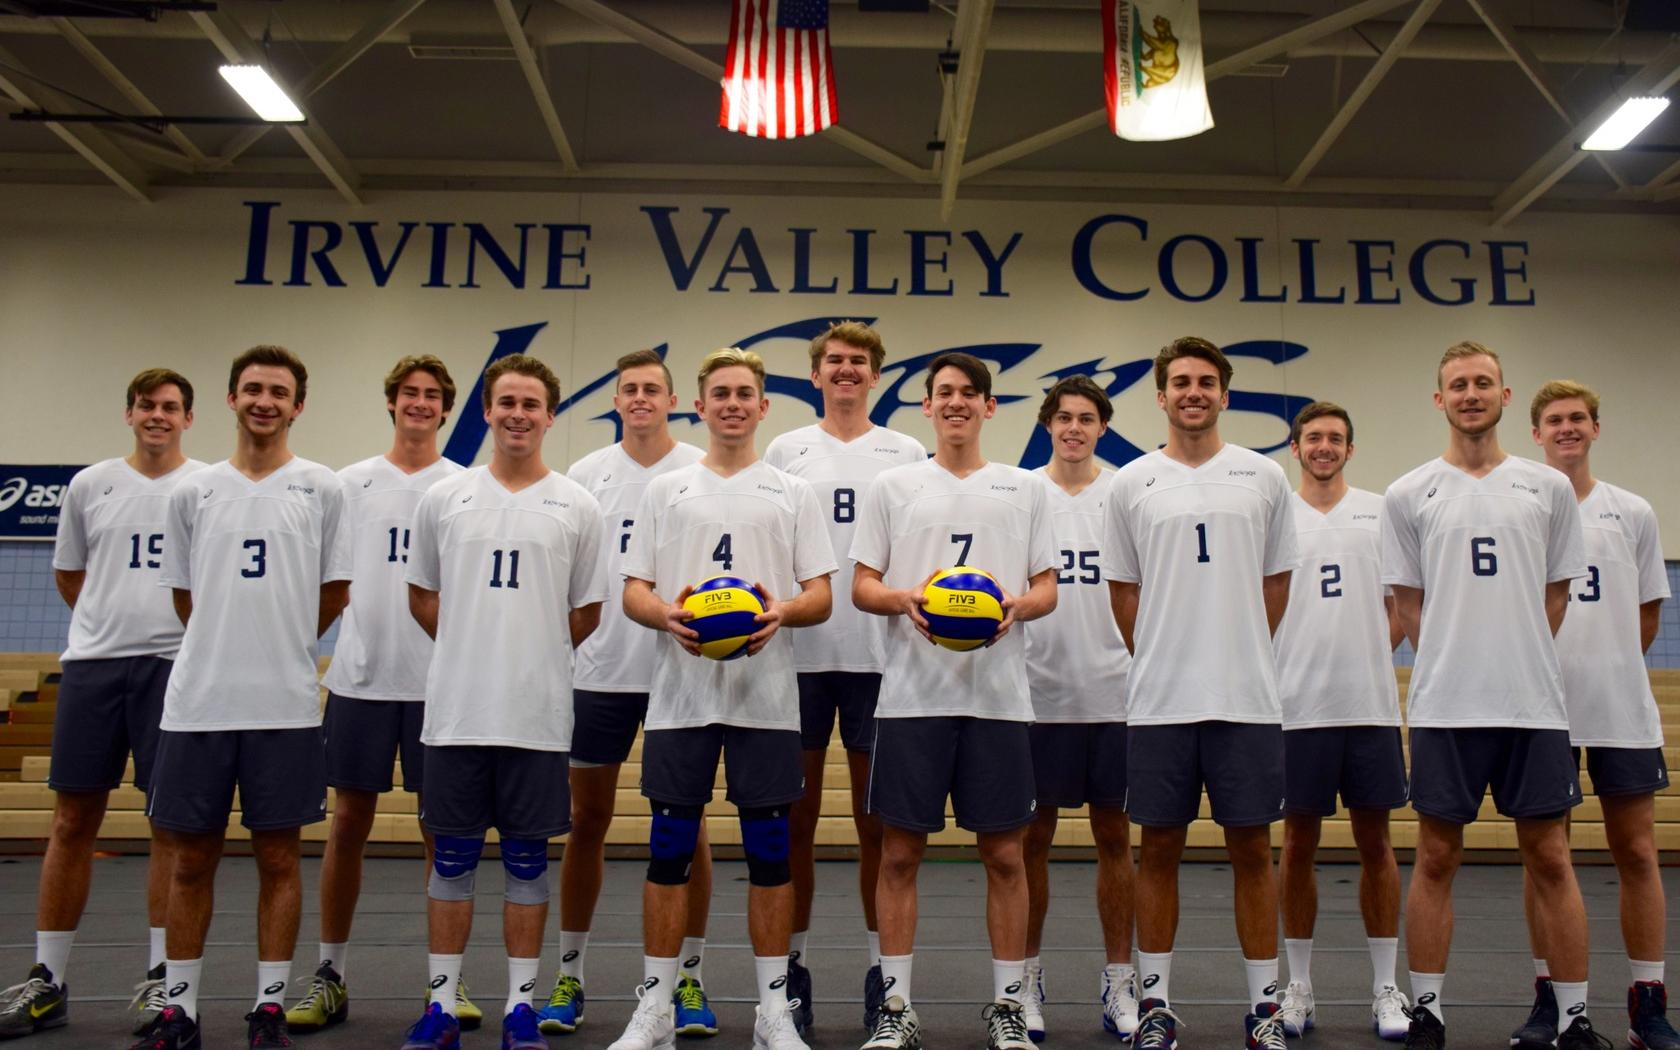 Top-ranked men's volleyball team sweeps past Palomar